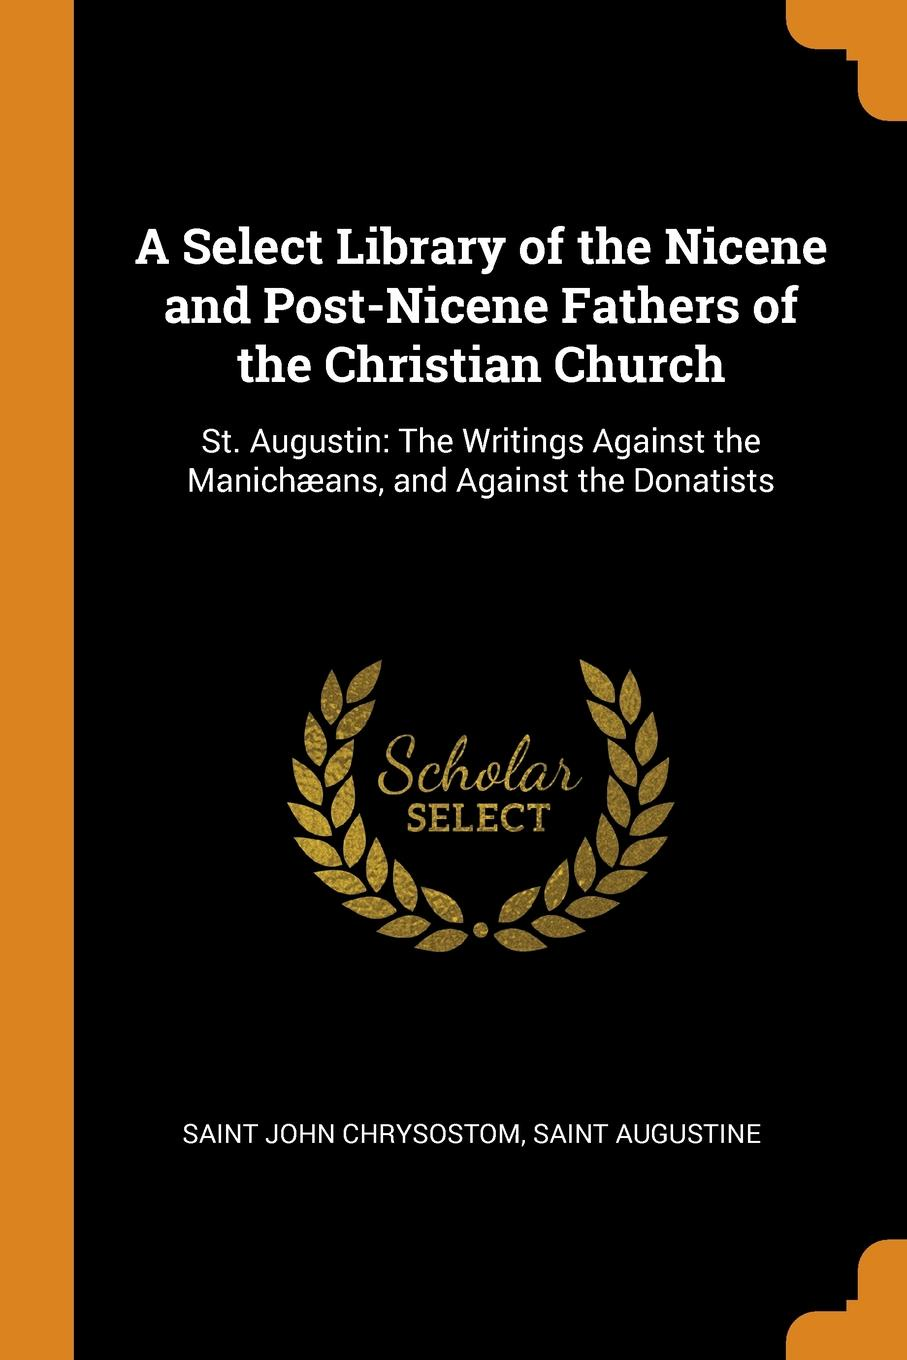 A-Select-Library-of-the-Nicene-and-Post-Nicene-Fathers-of-the-Christian-Church-St-Augustin-The-Writings-Against-the-Manichaeans-and-Against-the-Donati